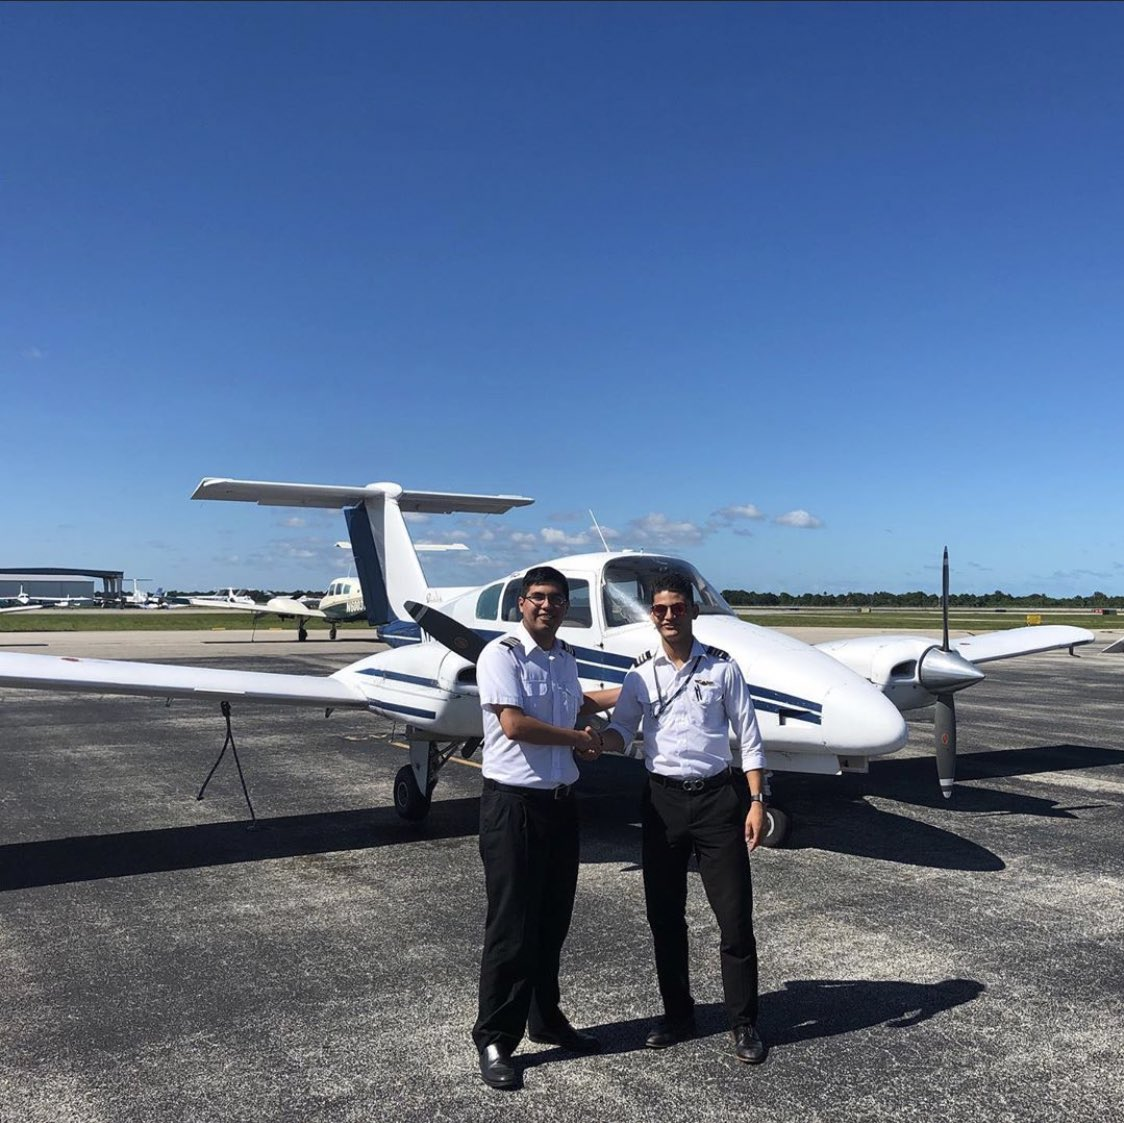 ENJ6qhLWwAIM9ax - Second half was more personal for me. I took a break from CR, because of lack of opportunities for me, but another door opened to me, I got my FAA Commercial Pilot License Now I am home enjoying with my family amp friends Looking forward to 2020 for even better things